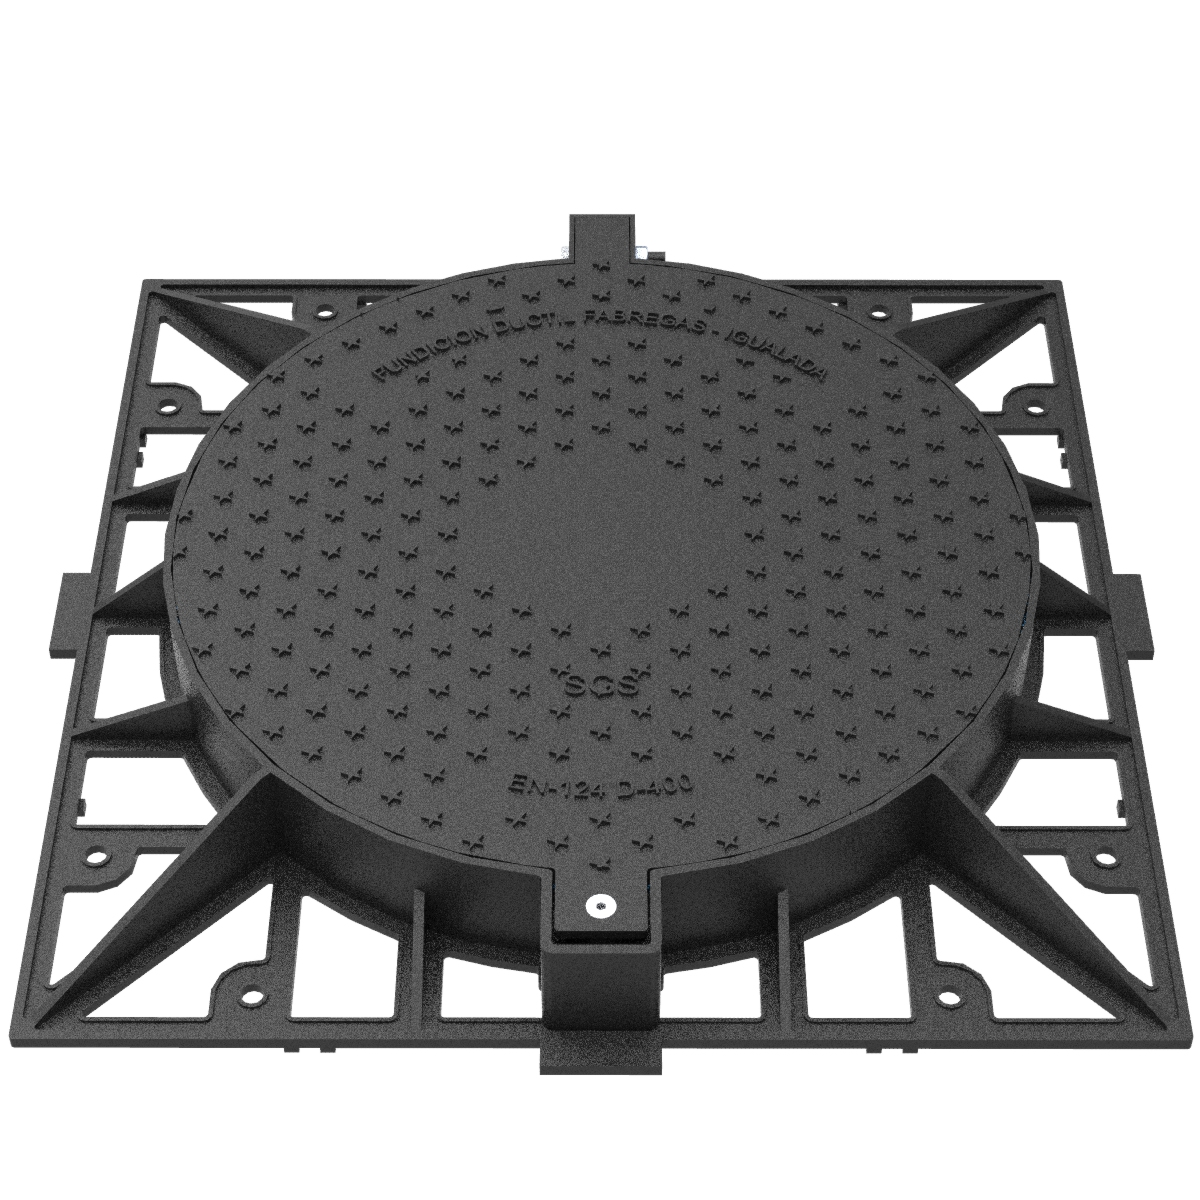 Circular Manhole cover and folding square frame of registry R-2-AR-D400